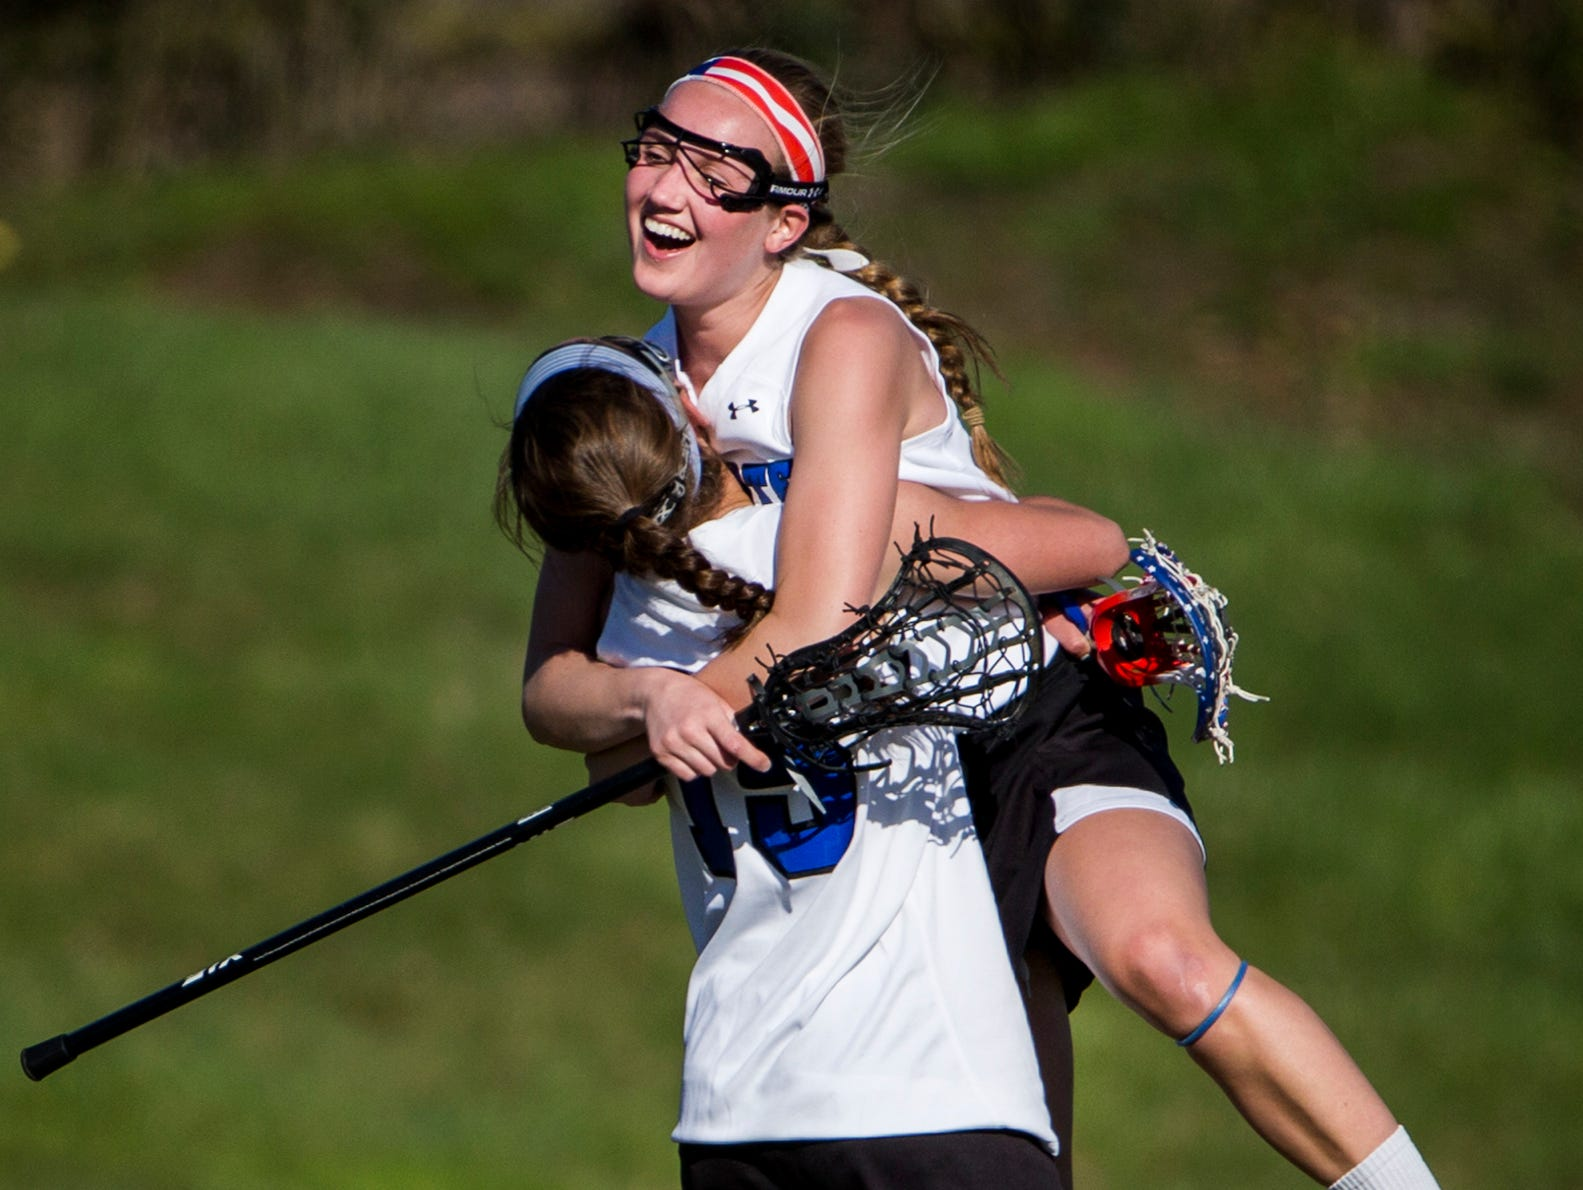 Charter's Kendall Adkins leaps into the arms of teammate Caroline Grasso after defeating Tower Hill 10-9 win at Charter School of Wilmington on Tuesday afternoon.